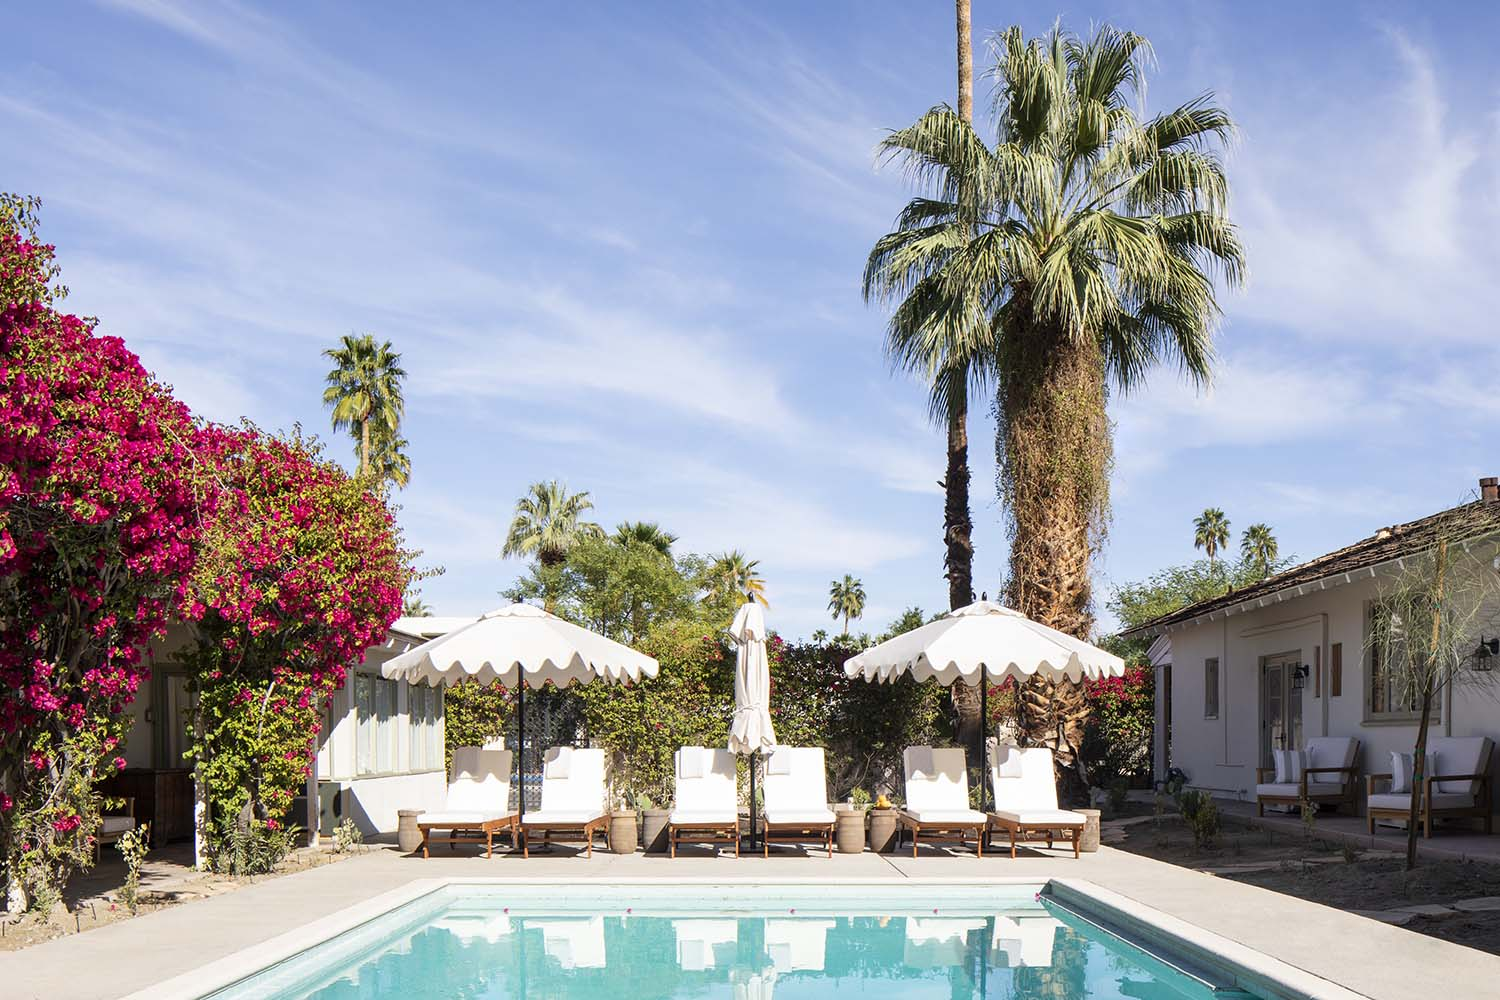 Casa Cody Palm Springs Bed and Breakfast Hotel